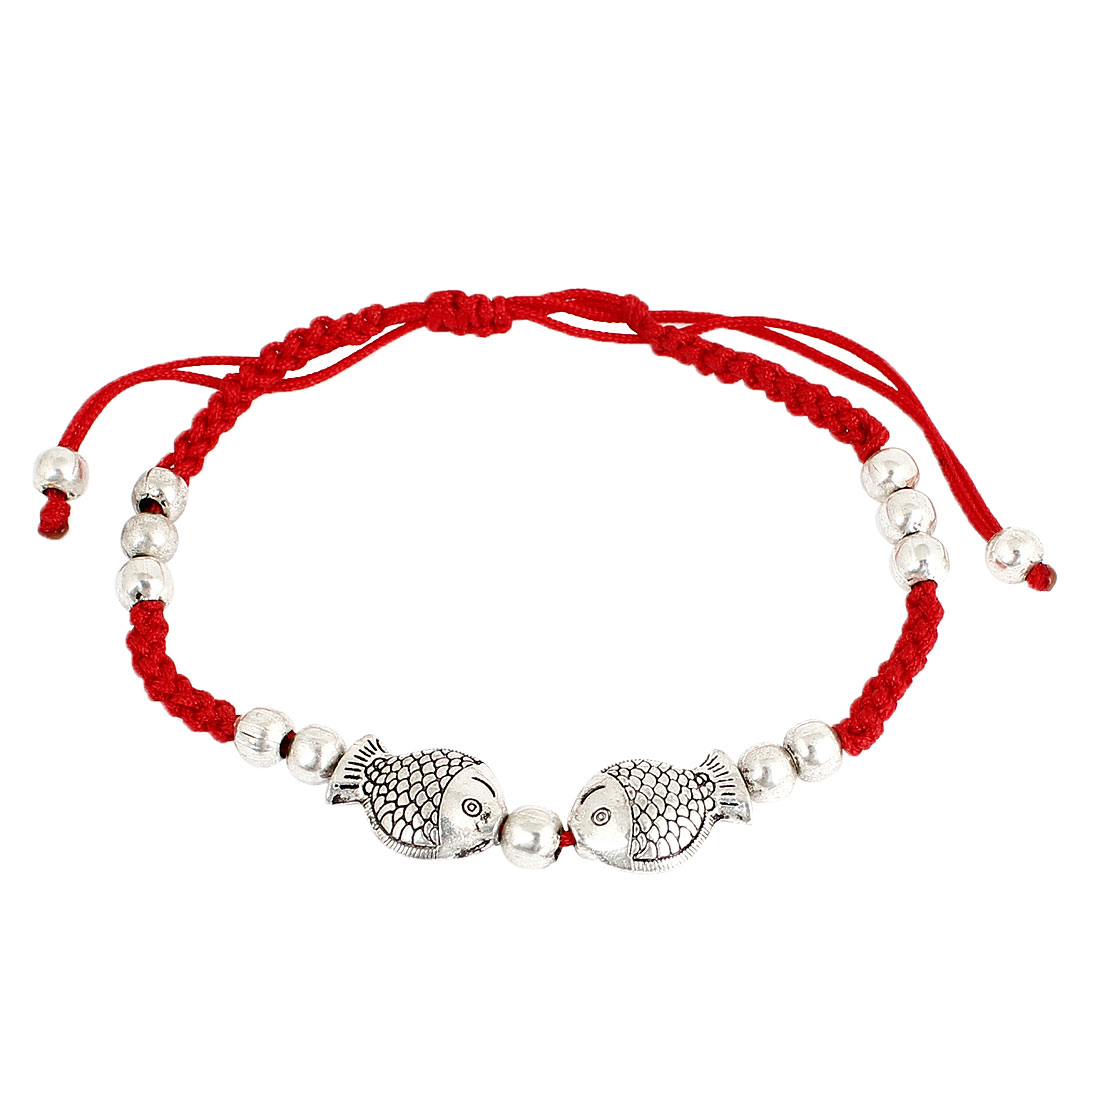 Unique Bargains Drawstring Closure Carved Kissing Fish Accent Red Rope Bracelets for Women Girls